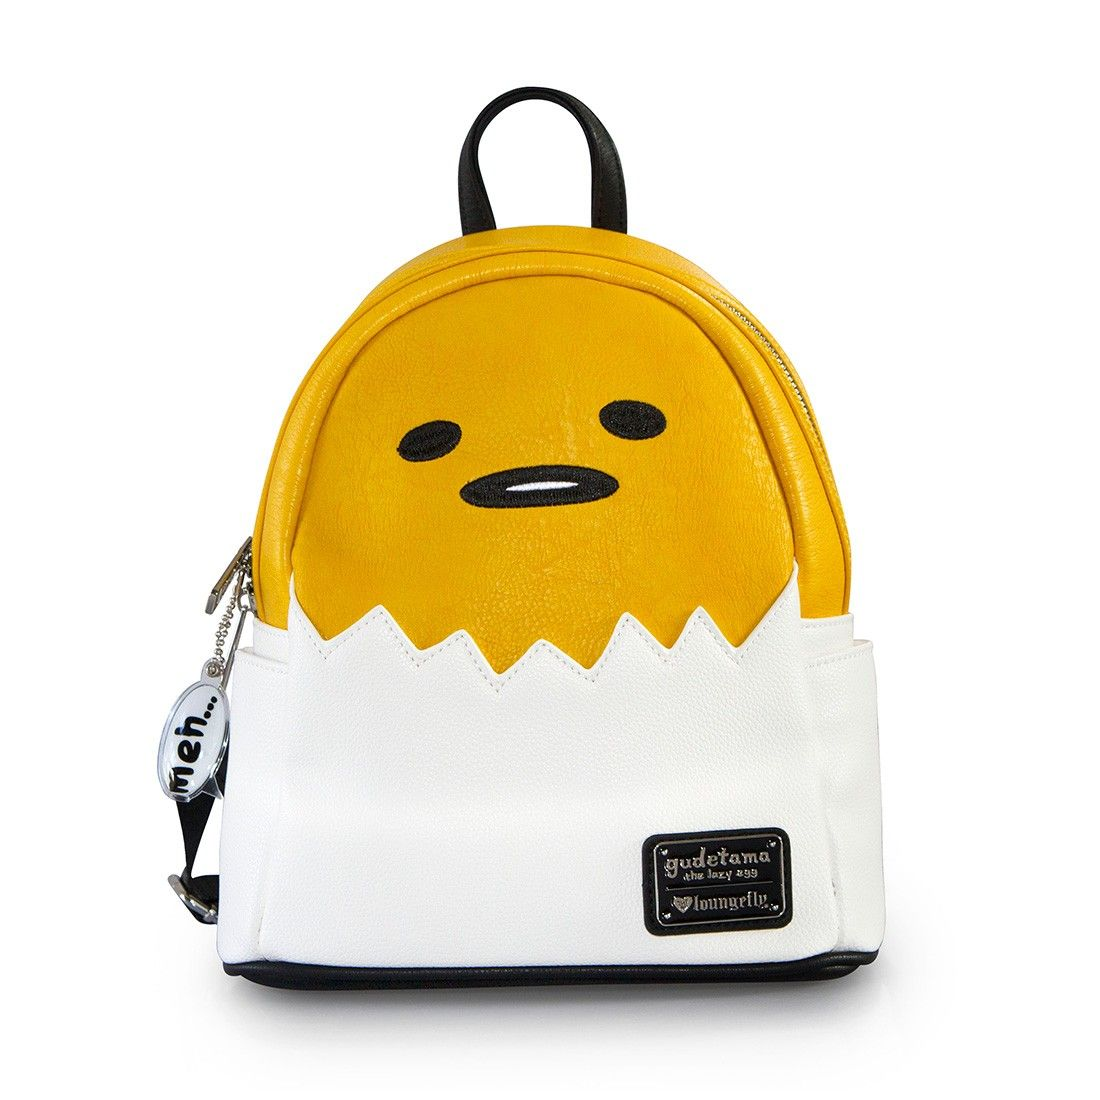 5962eab2f35b Loungefly x Gudetama Mini Faux Leather Backpack - Backpacks - Hello ...